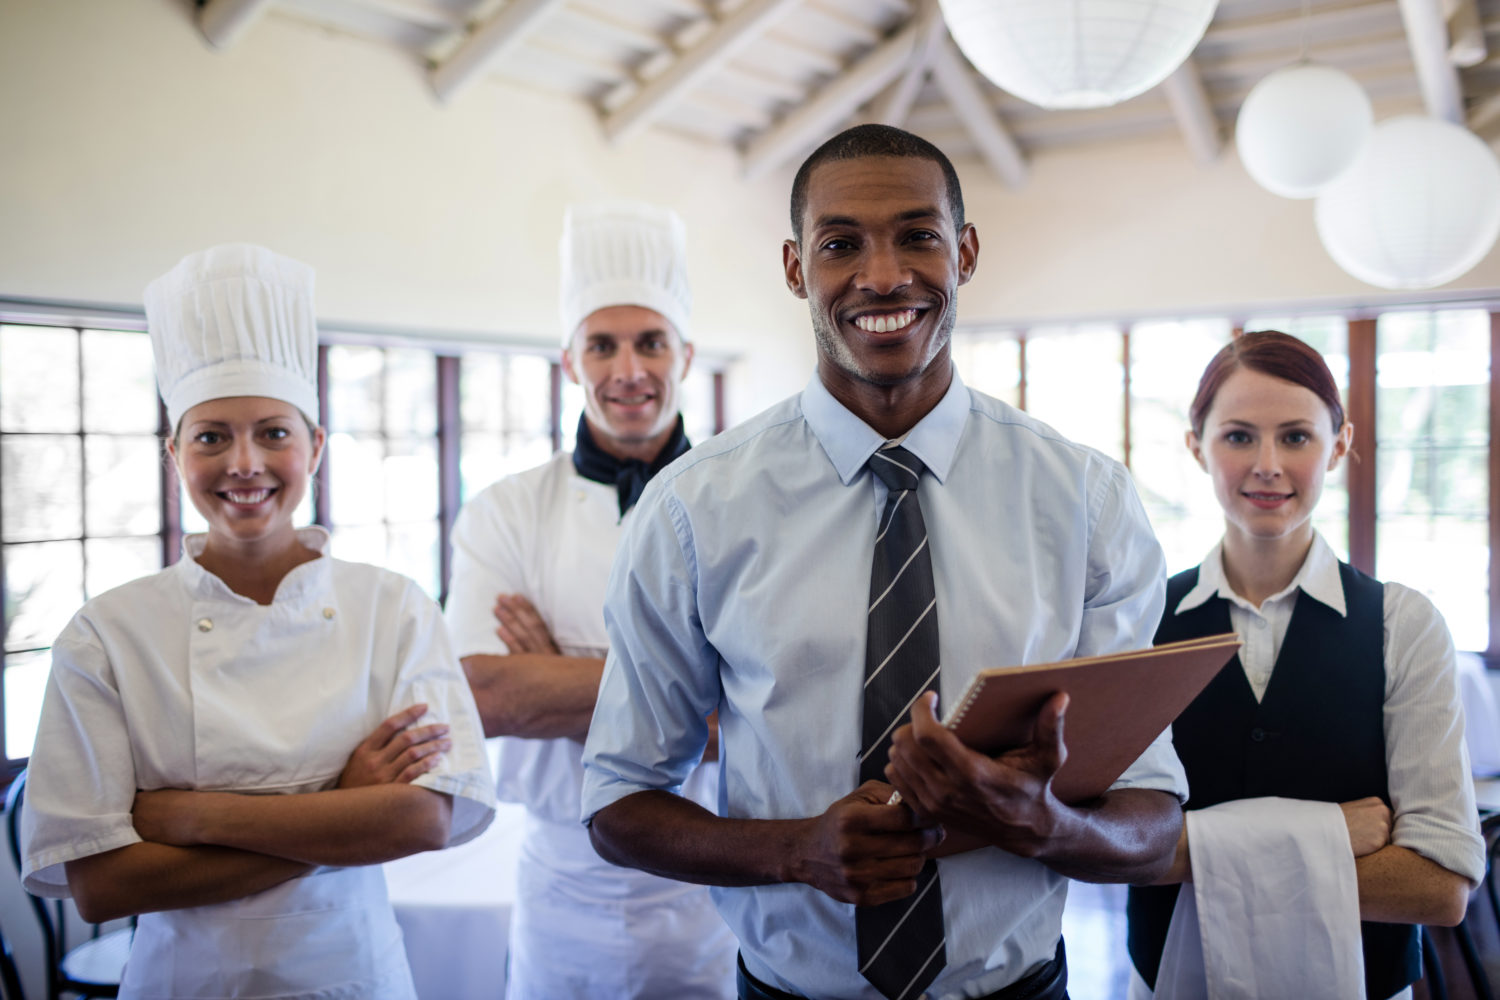 Hospitality Jobs & Training for a BTEC qualification